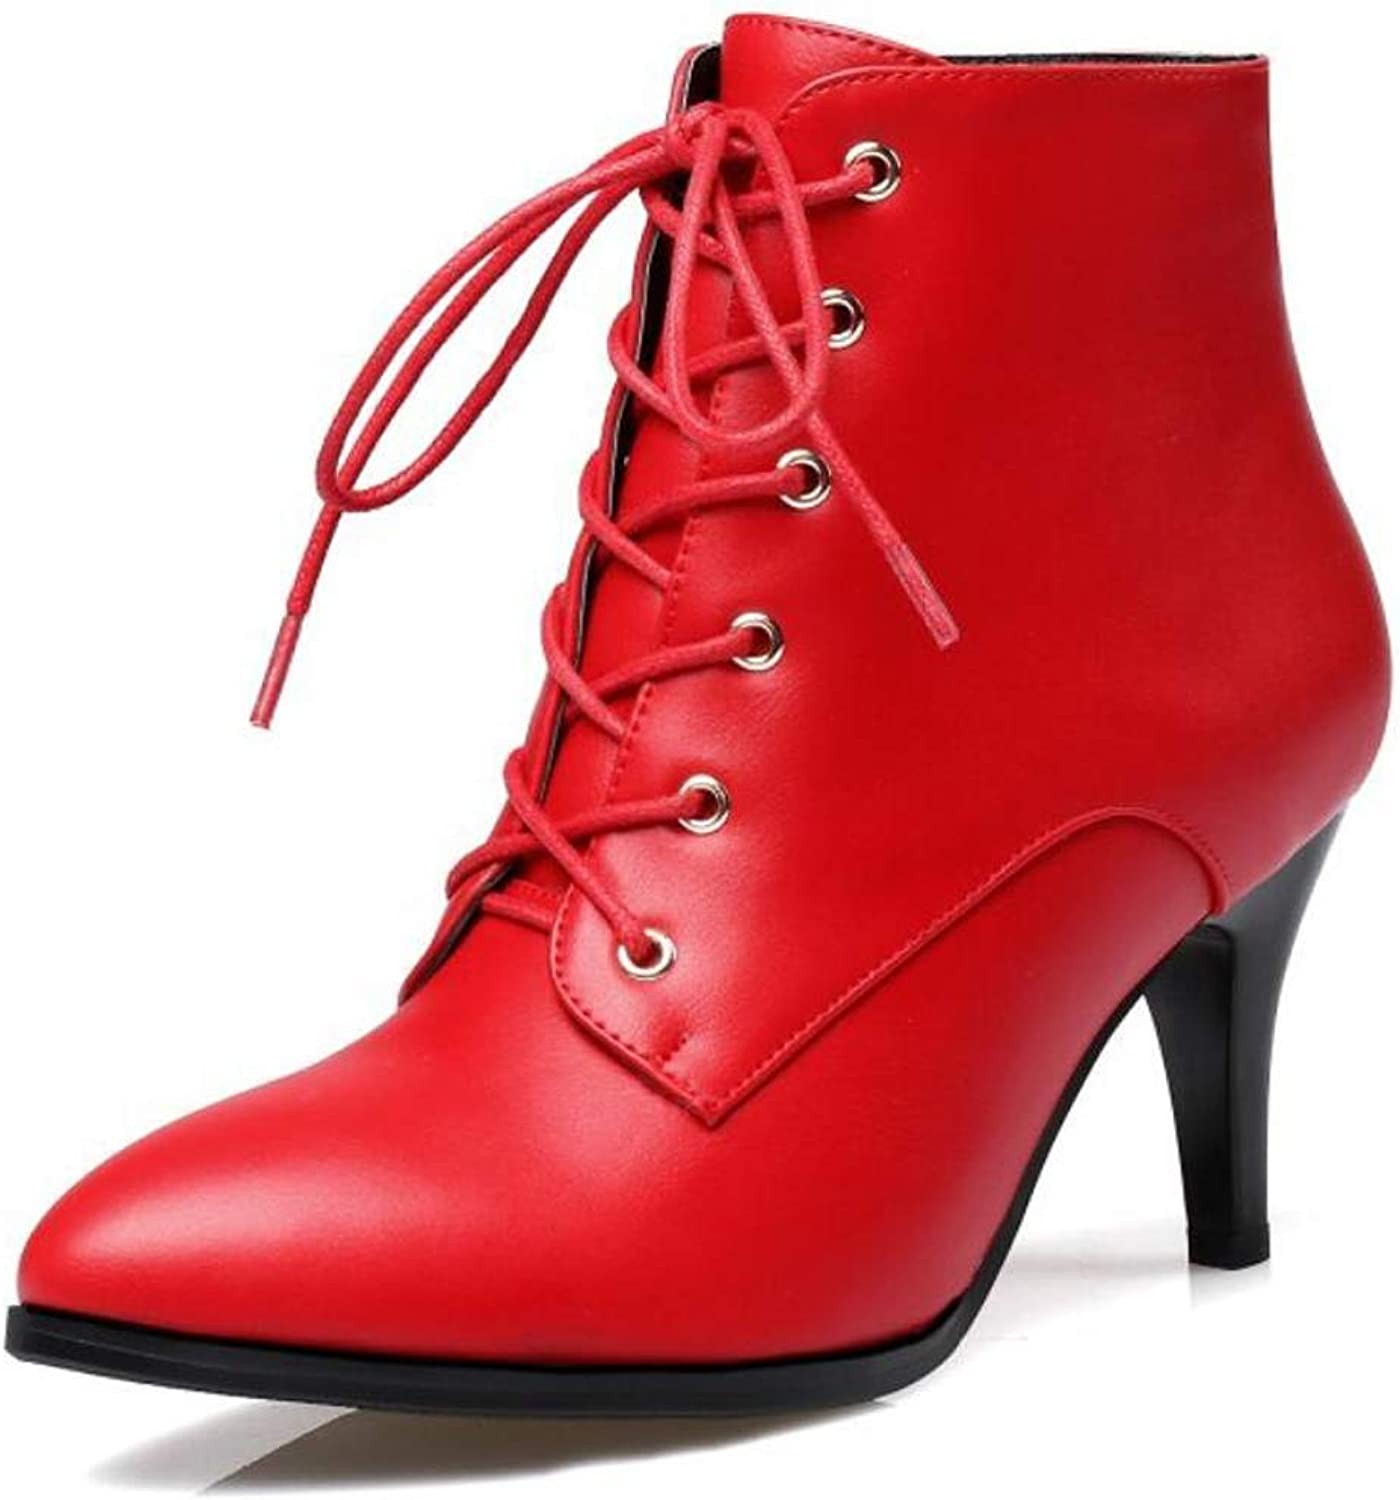 Ladies High Heel shoes Lace Up Stiletto Heel Ankle Boots Sring Fall Pointed Toe shoes for 2019 New